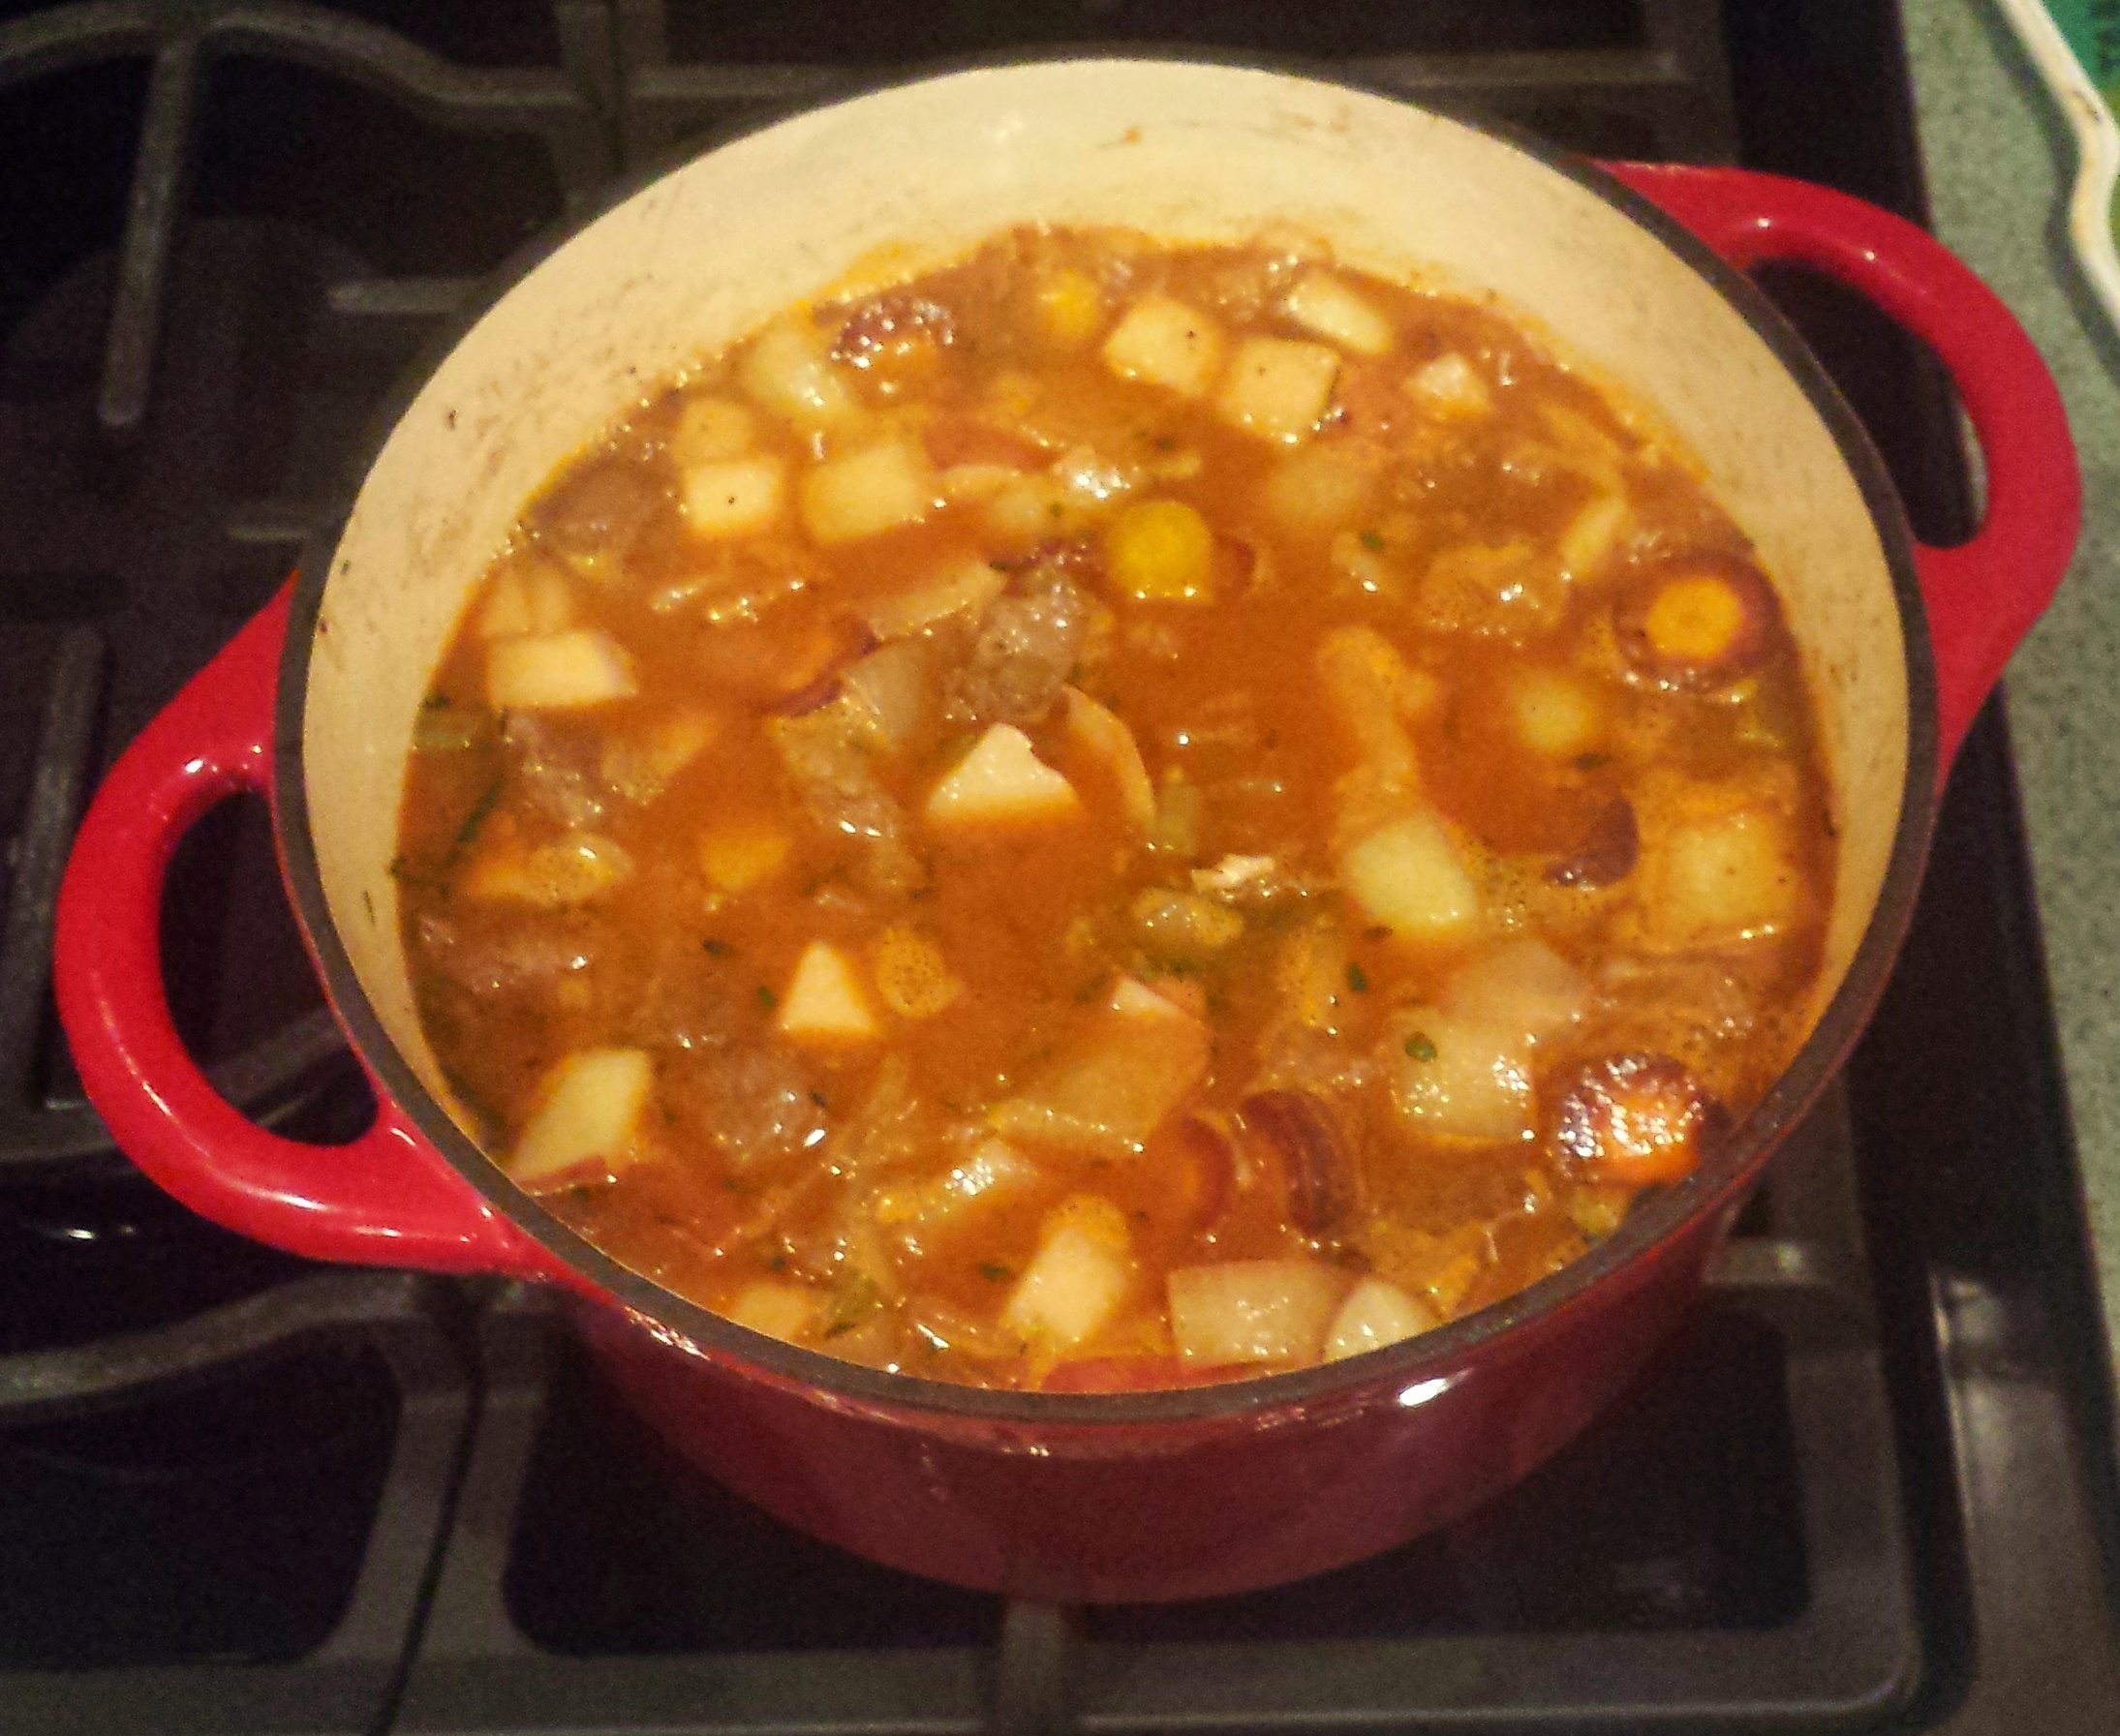 The pot roast stew simmering in the dutch oven.